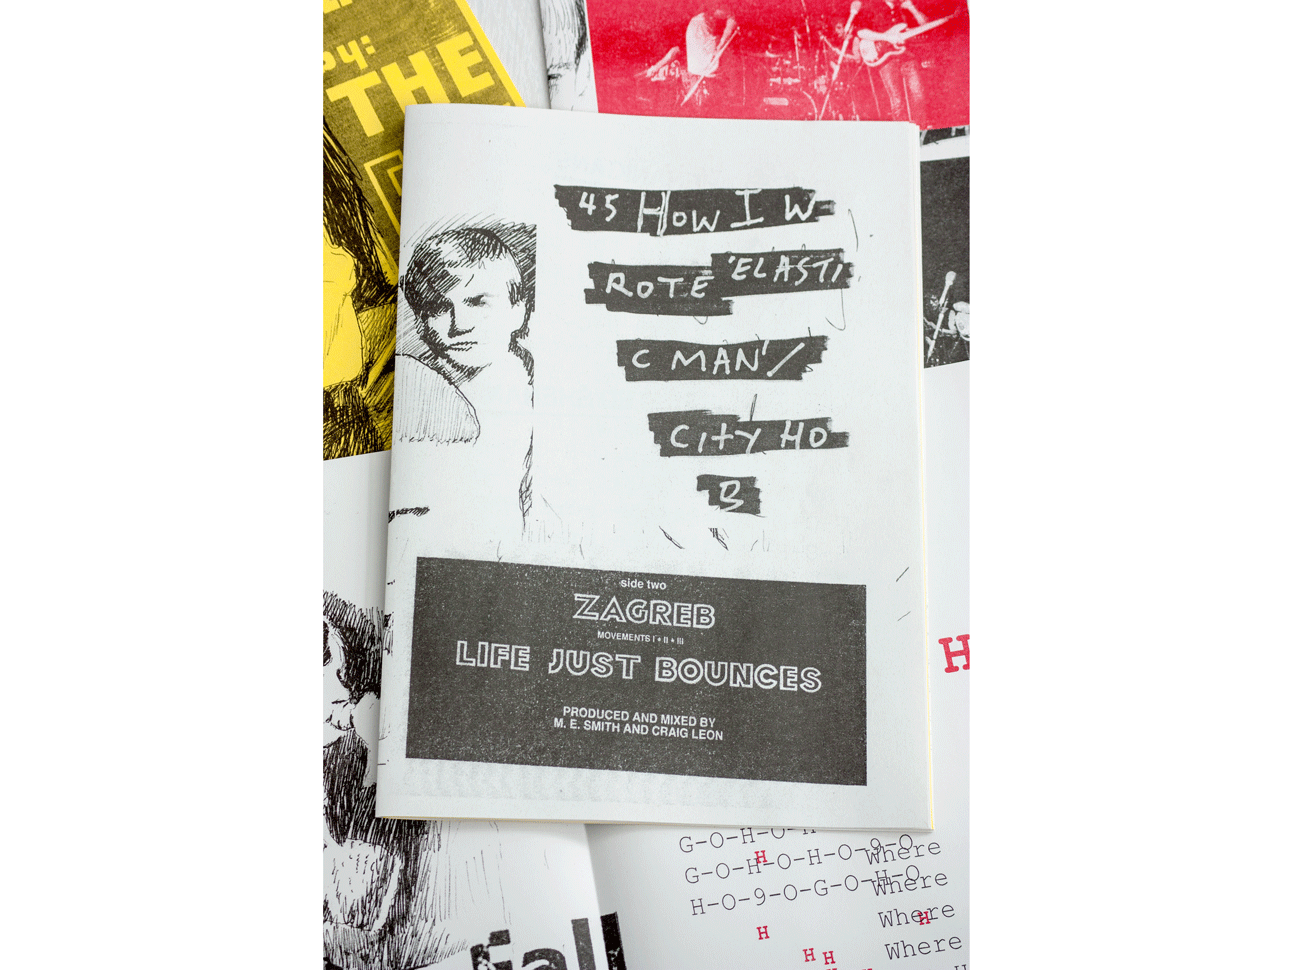 The Neighbourhood of Infinity fanzine about The Fall (Risograph)